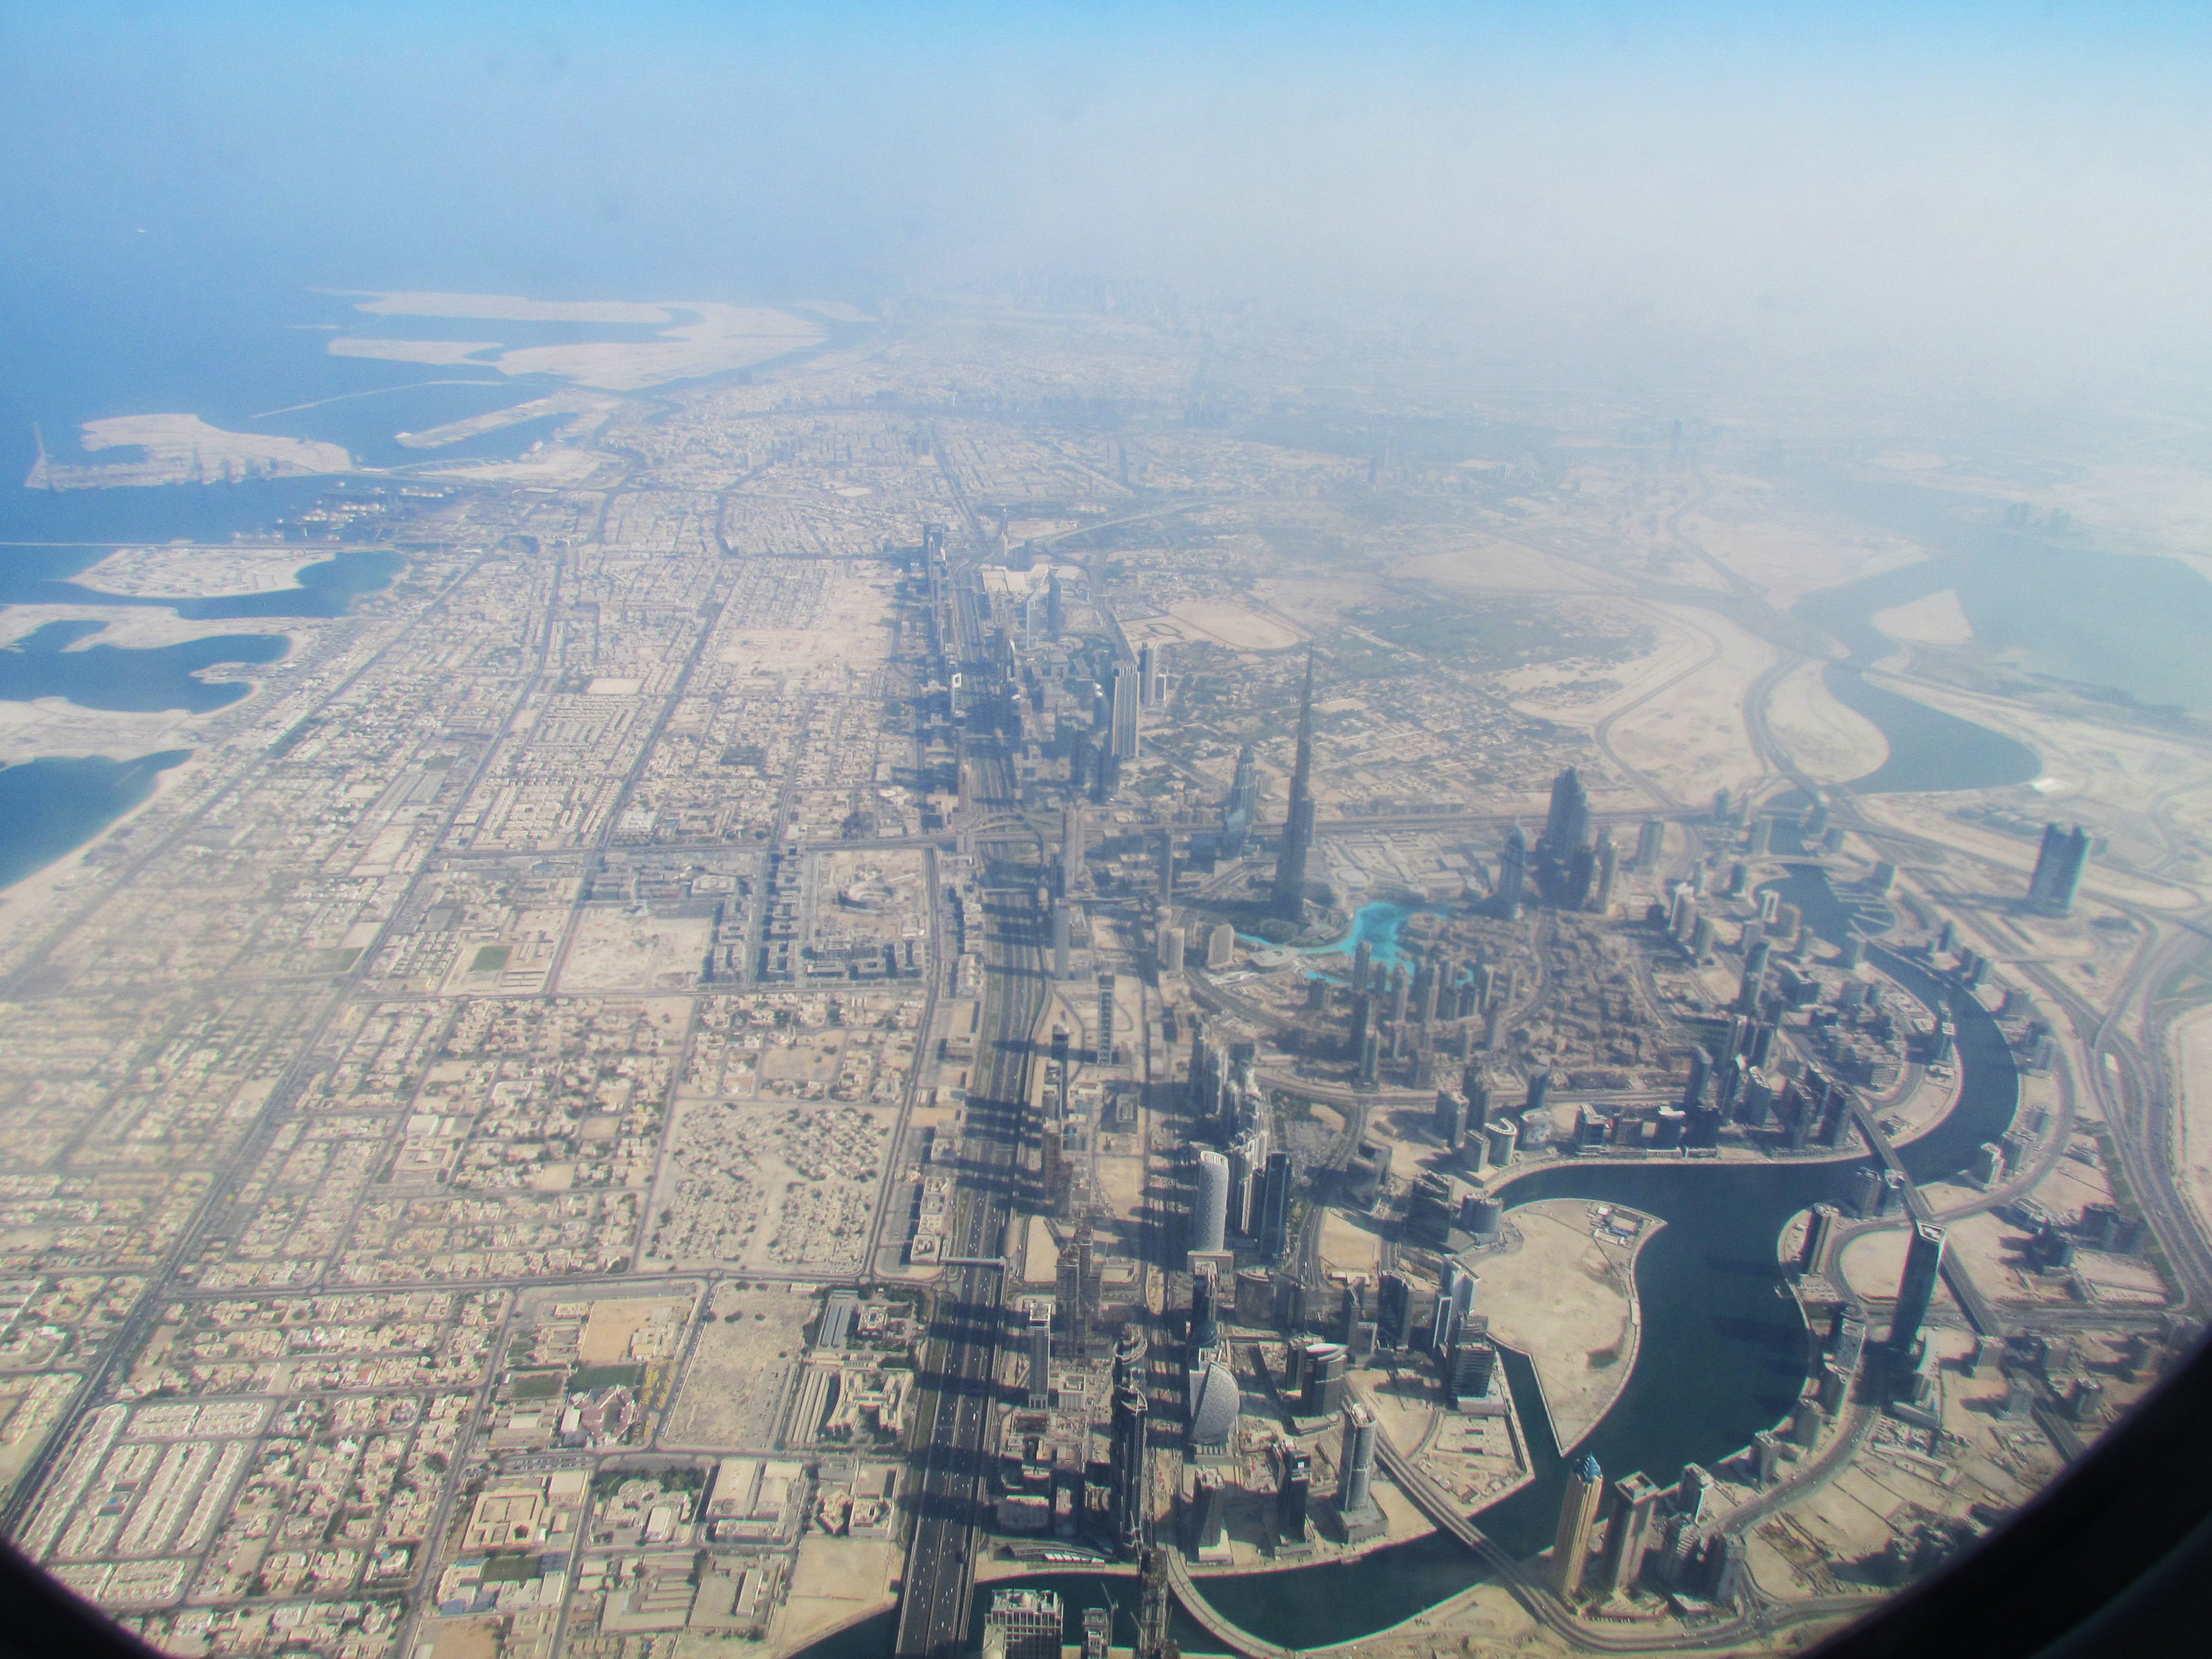 Layover in Dubai. We flew over the buildings of the city including the Burj Khalifa. Here you can see the blue pools at the base of the building.